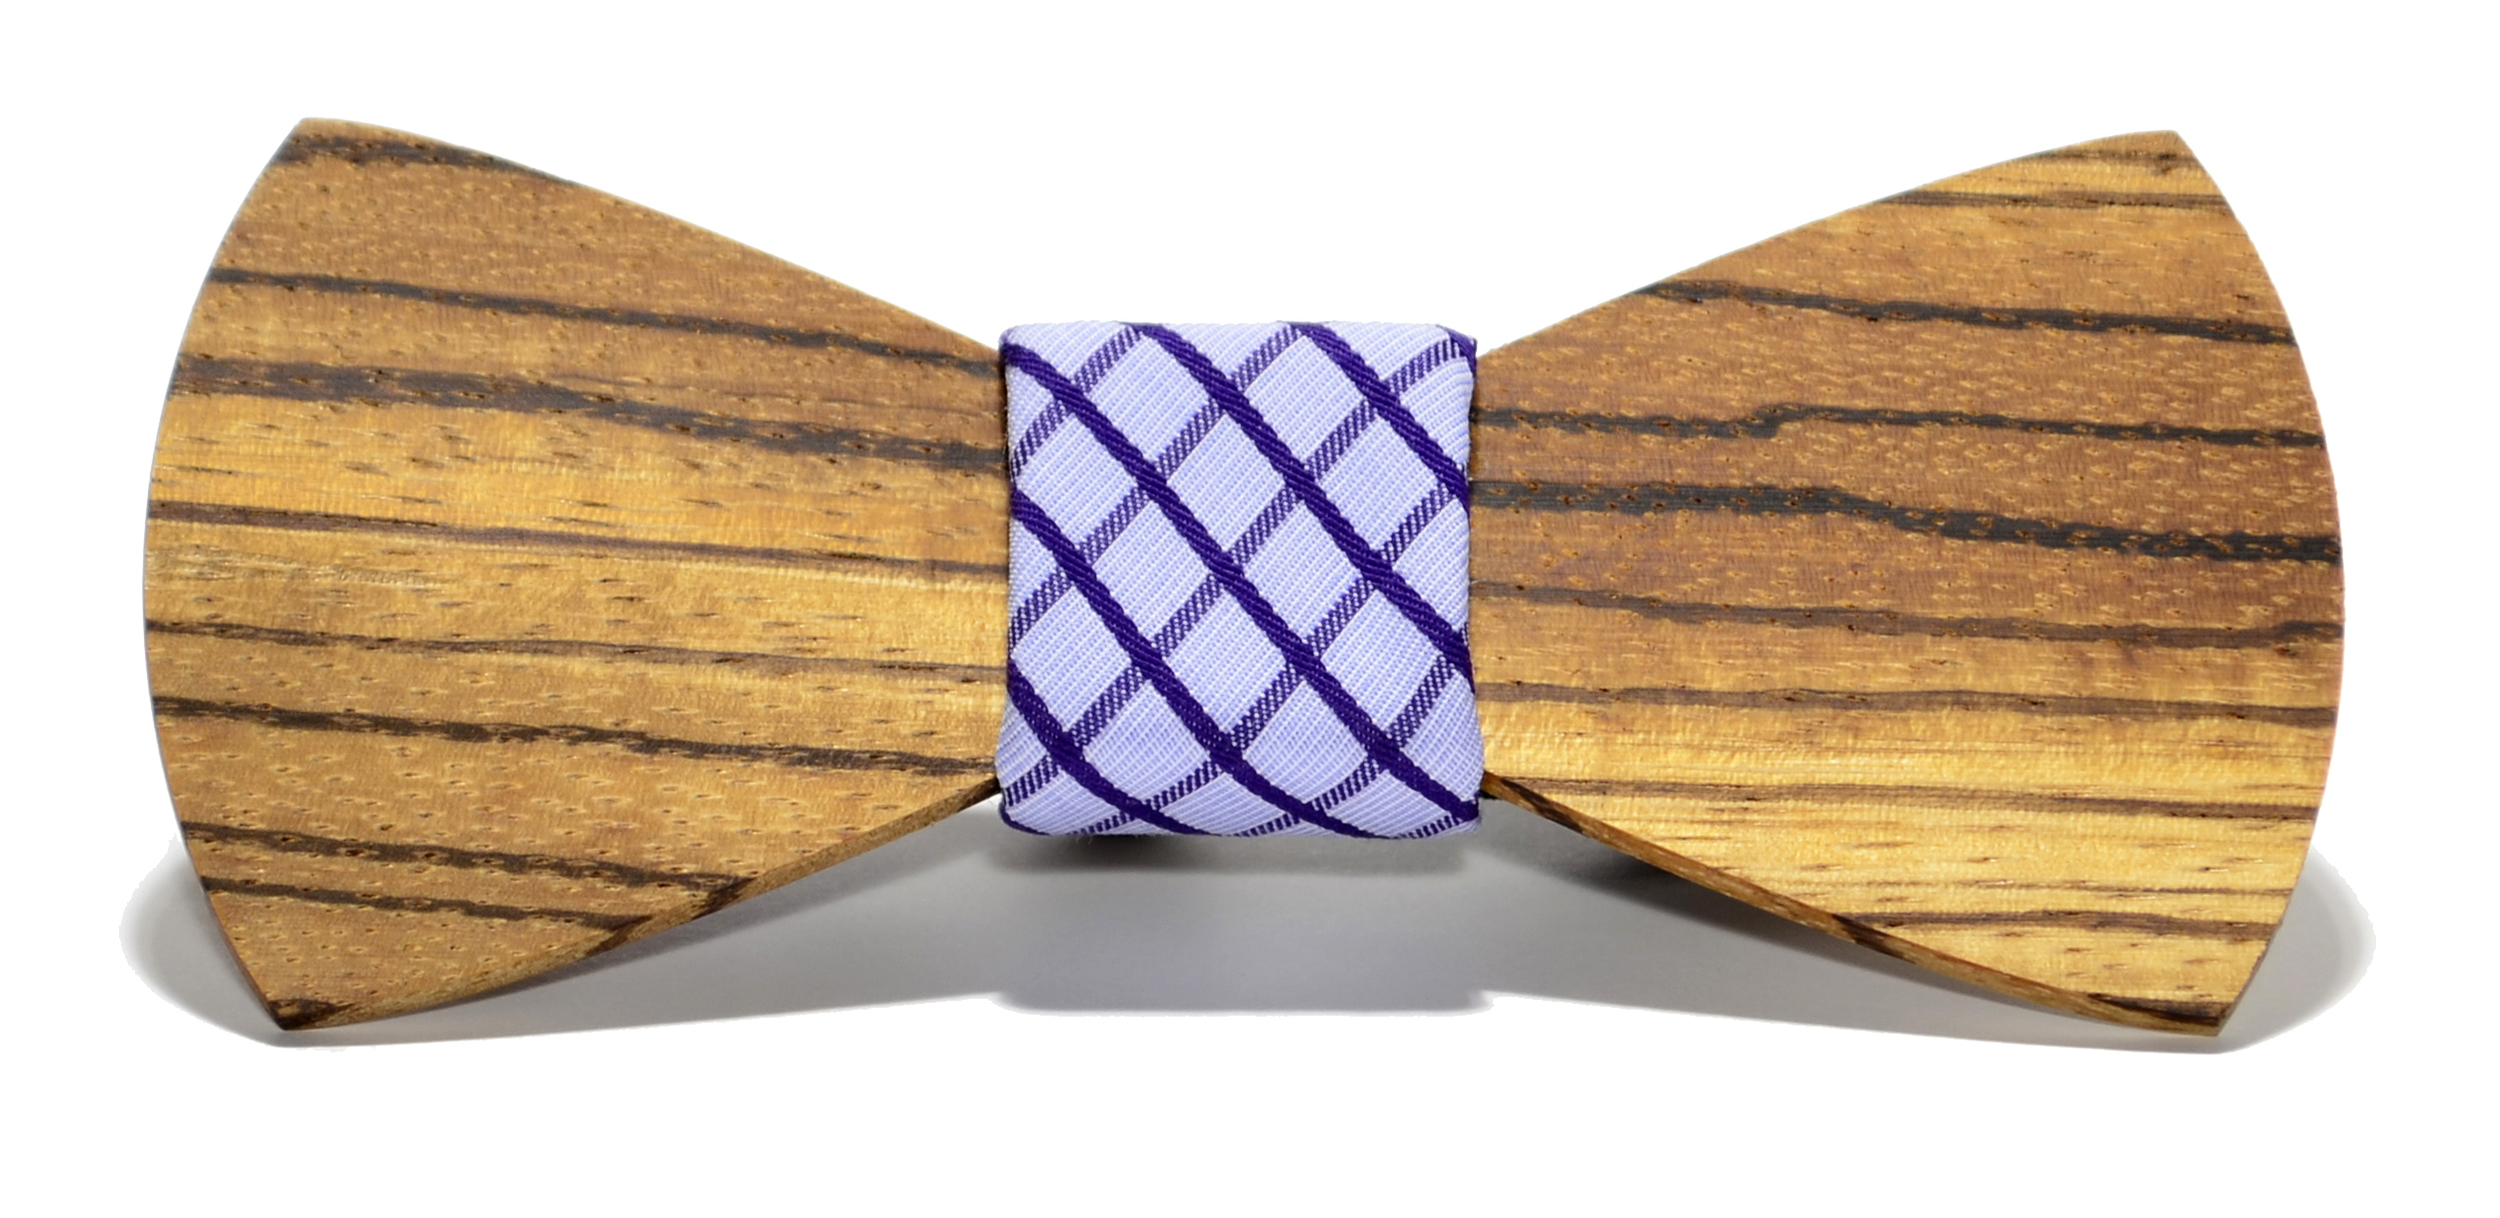 The Manhattan Zebrawood Traditional Cotton Wooden Bow Tie